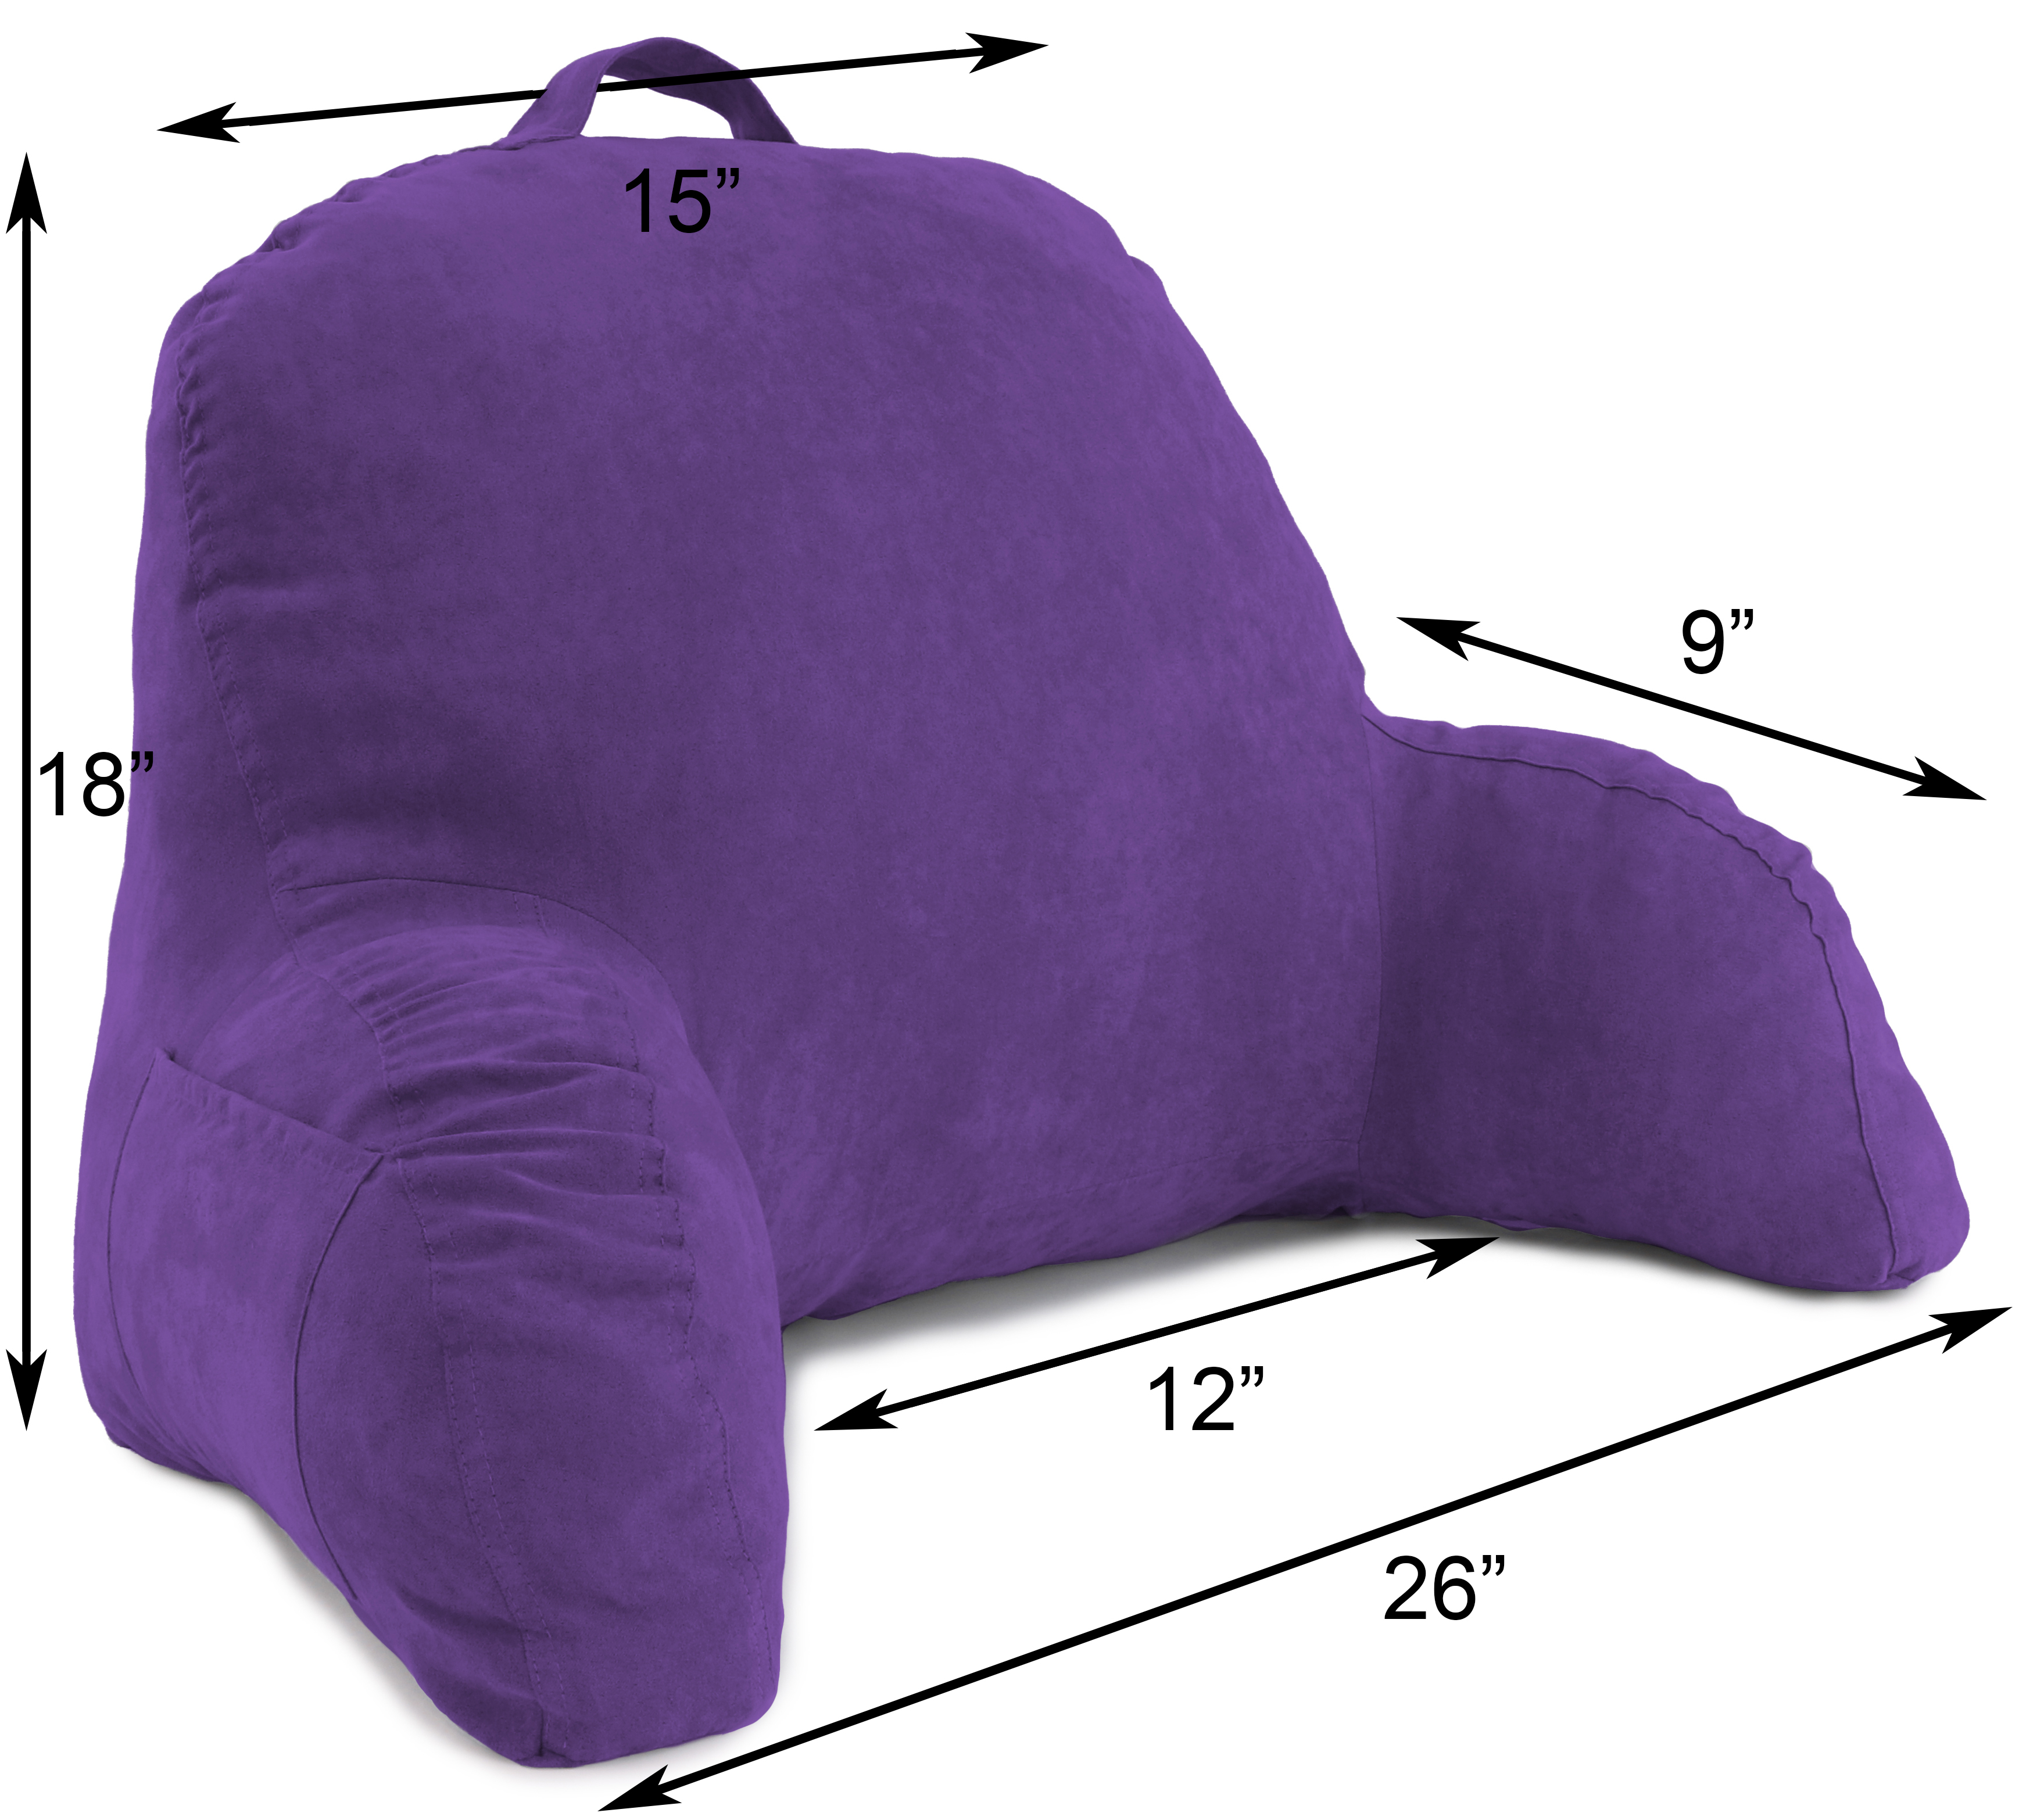 Microsuede-Bed-Rest-Reading-and-Bed-Rest-Lounger-Bed-Pillow thumbnail 28